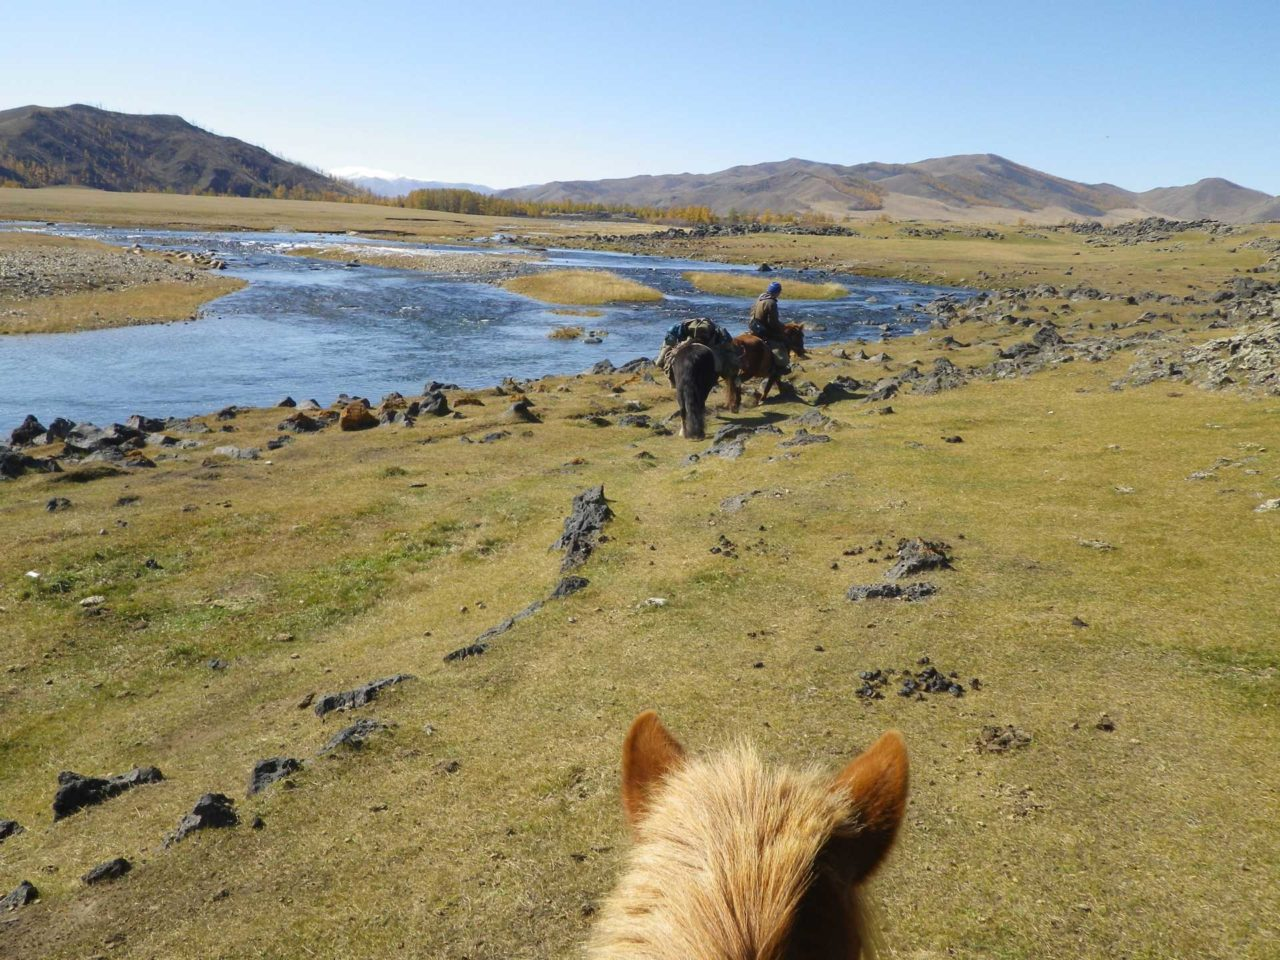 JOurney by horse in Mongolia